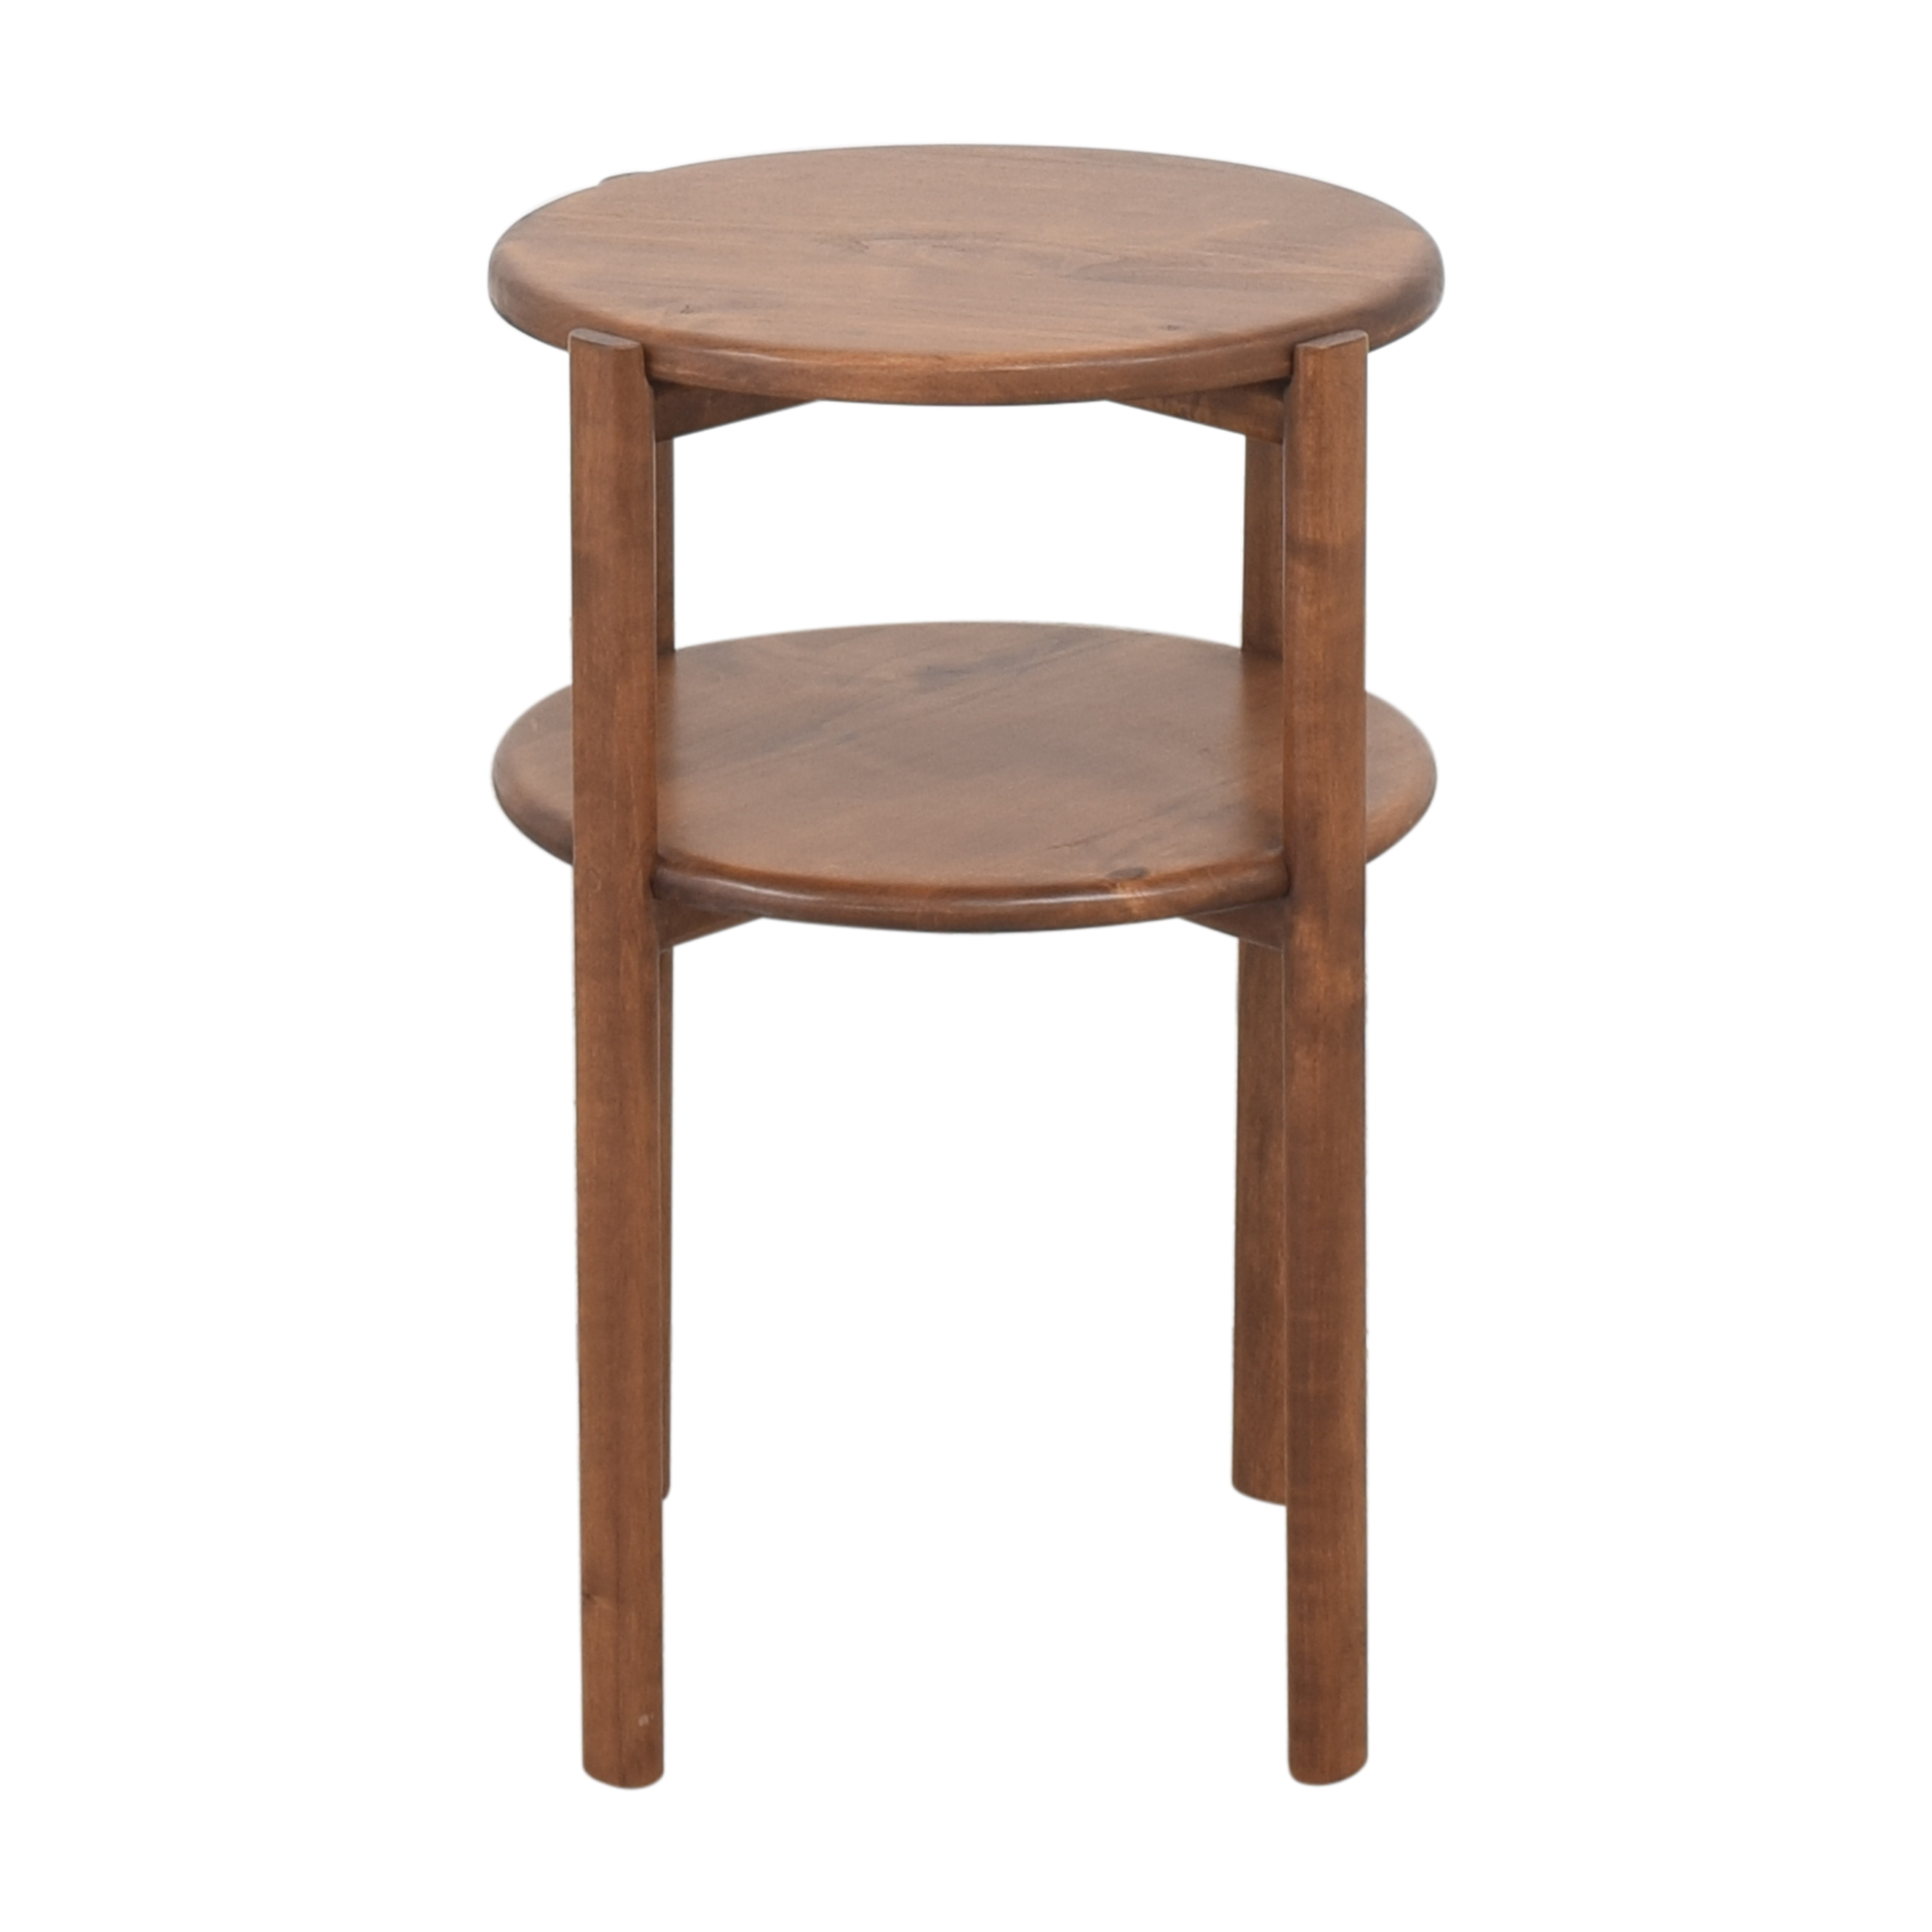 shop Parachute Parachute Handmade Wood Side Table online